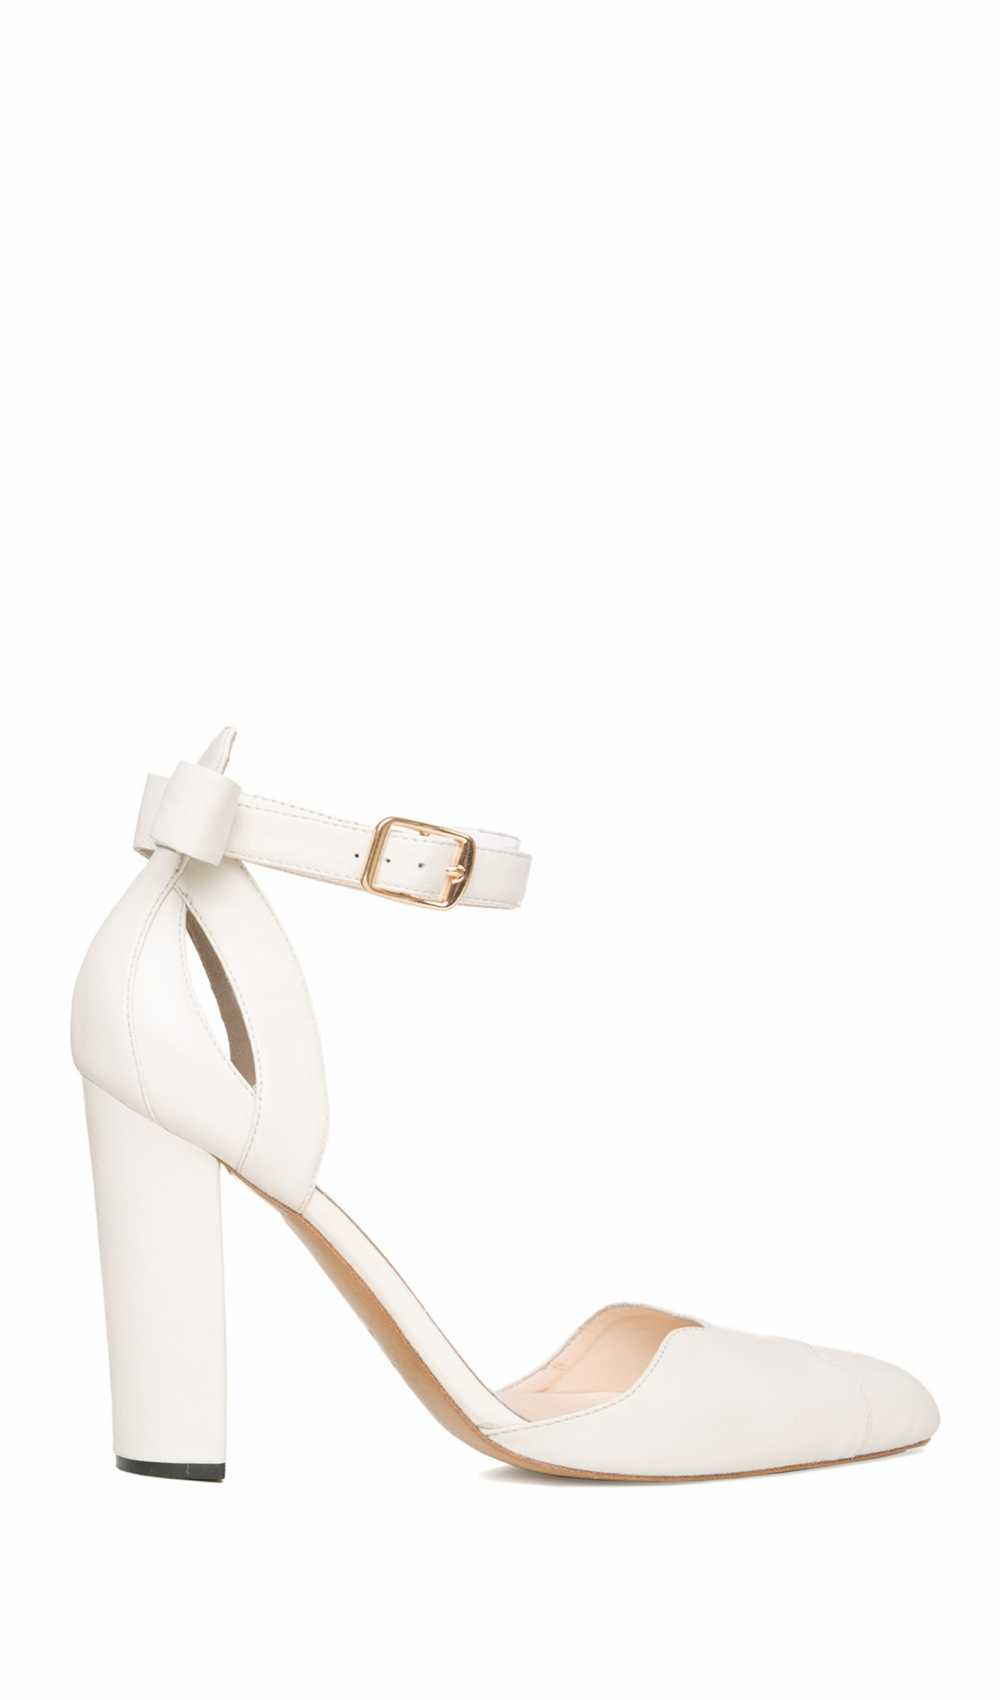 White High Heels - Petite Bow Pumps by Kaviar Gauche